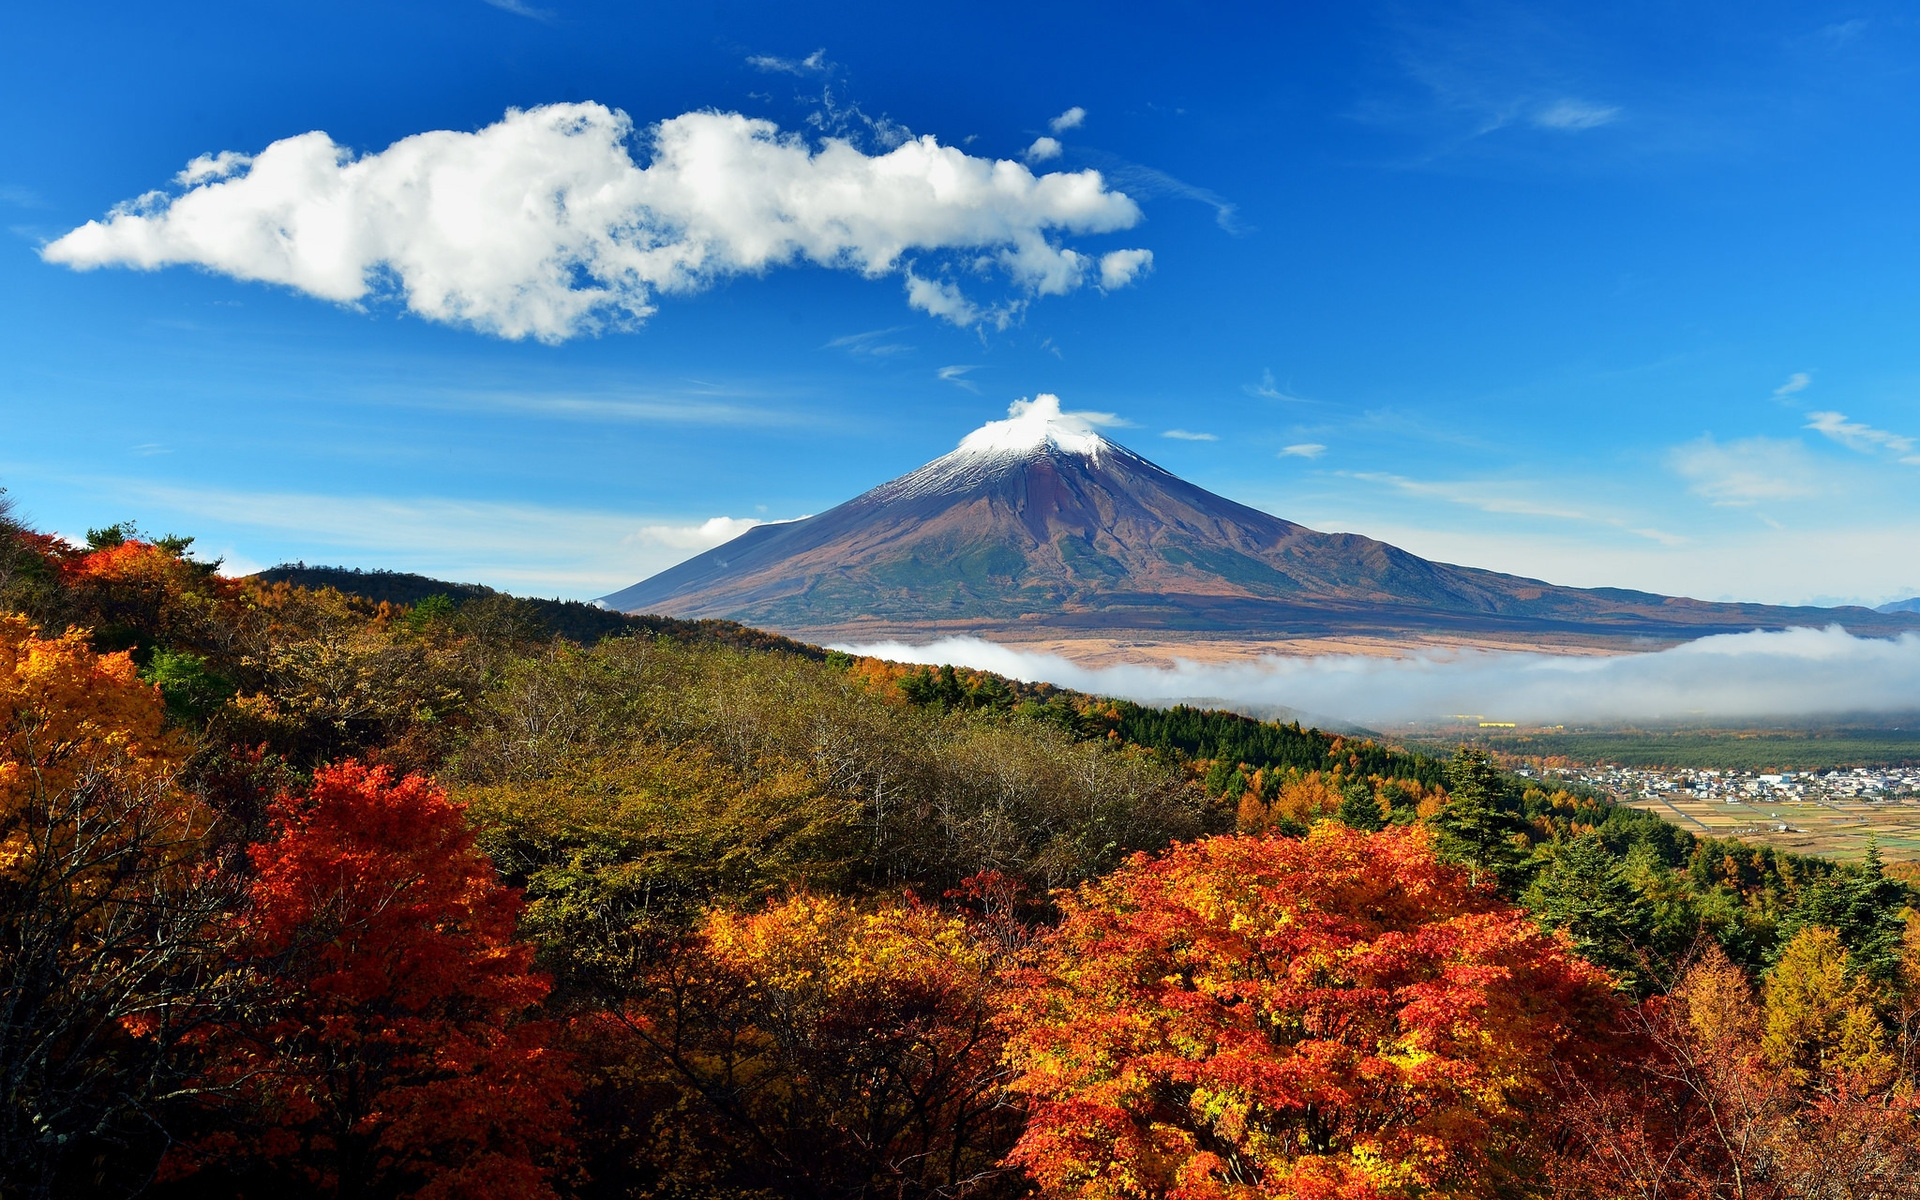 Mount Fuji Japan 1920 X 1200 Widescreen Wallpaper